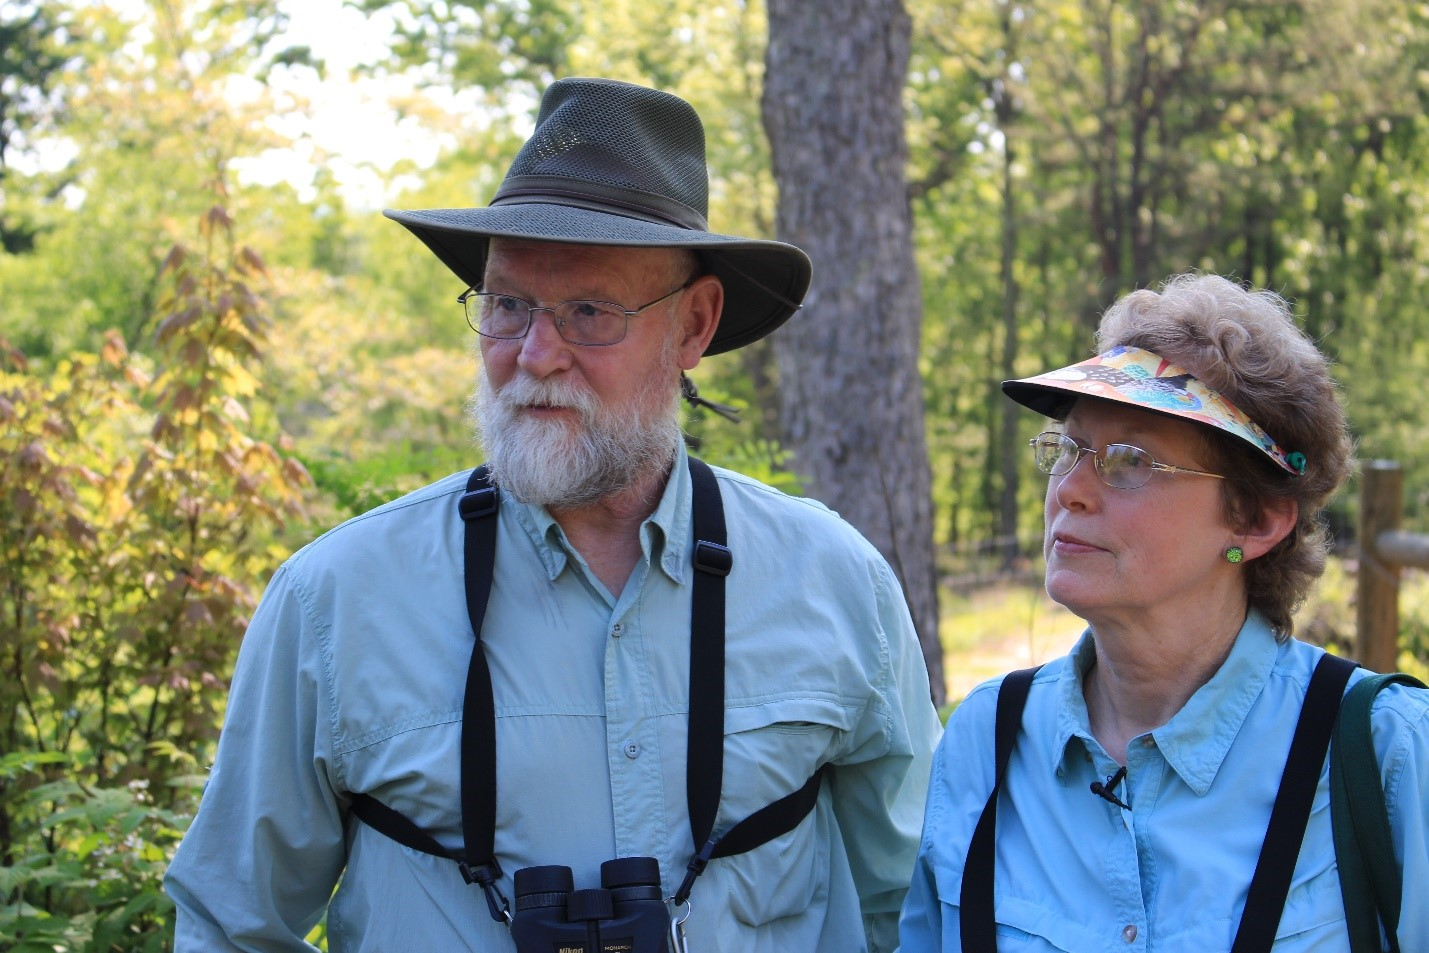 Mike and Laura Jackson manage 114 acres of forestland in Pennsylvania. NRCS photo.